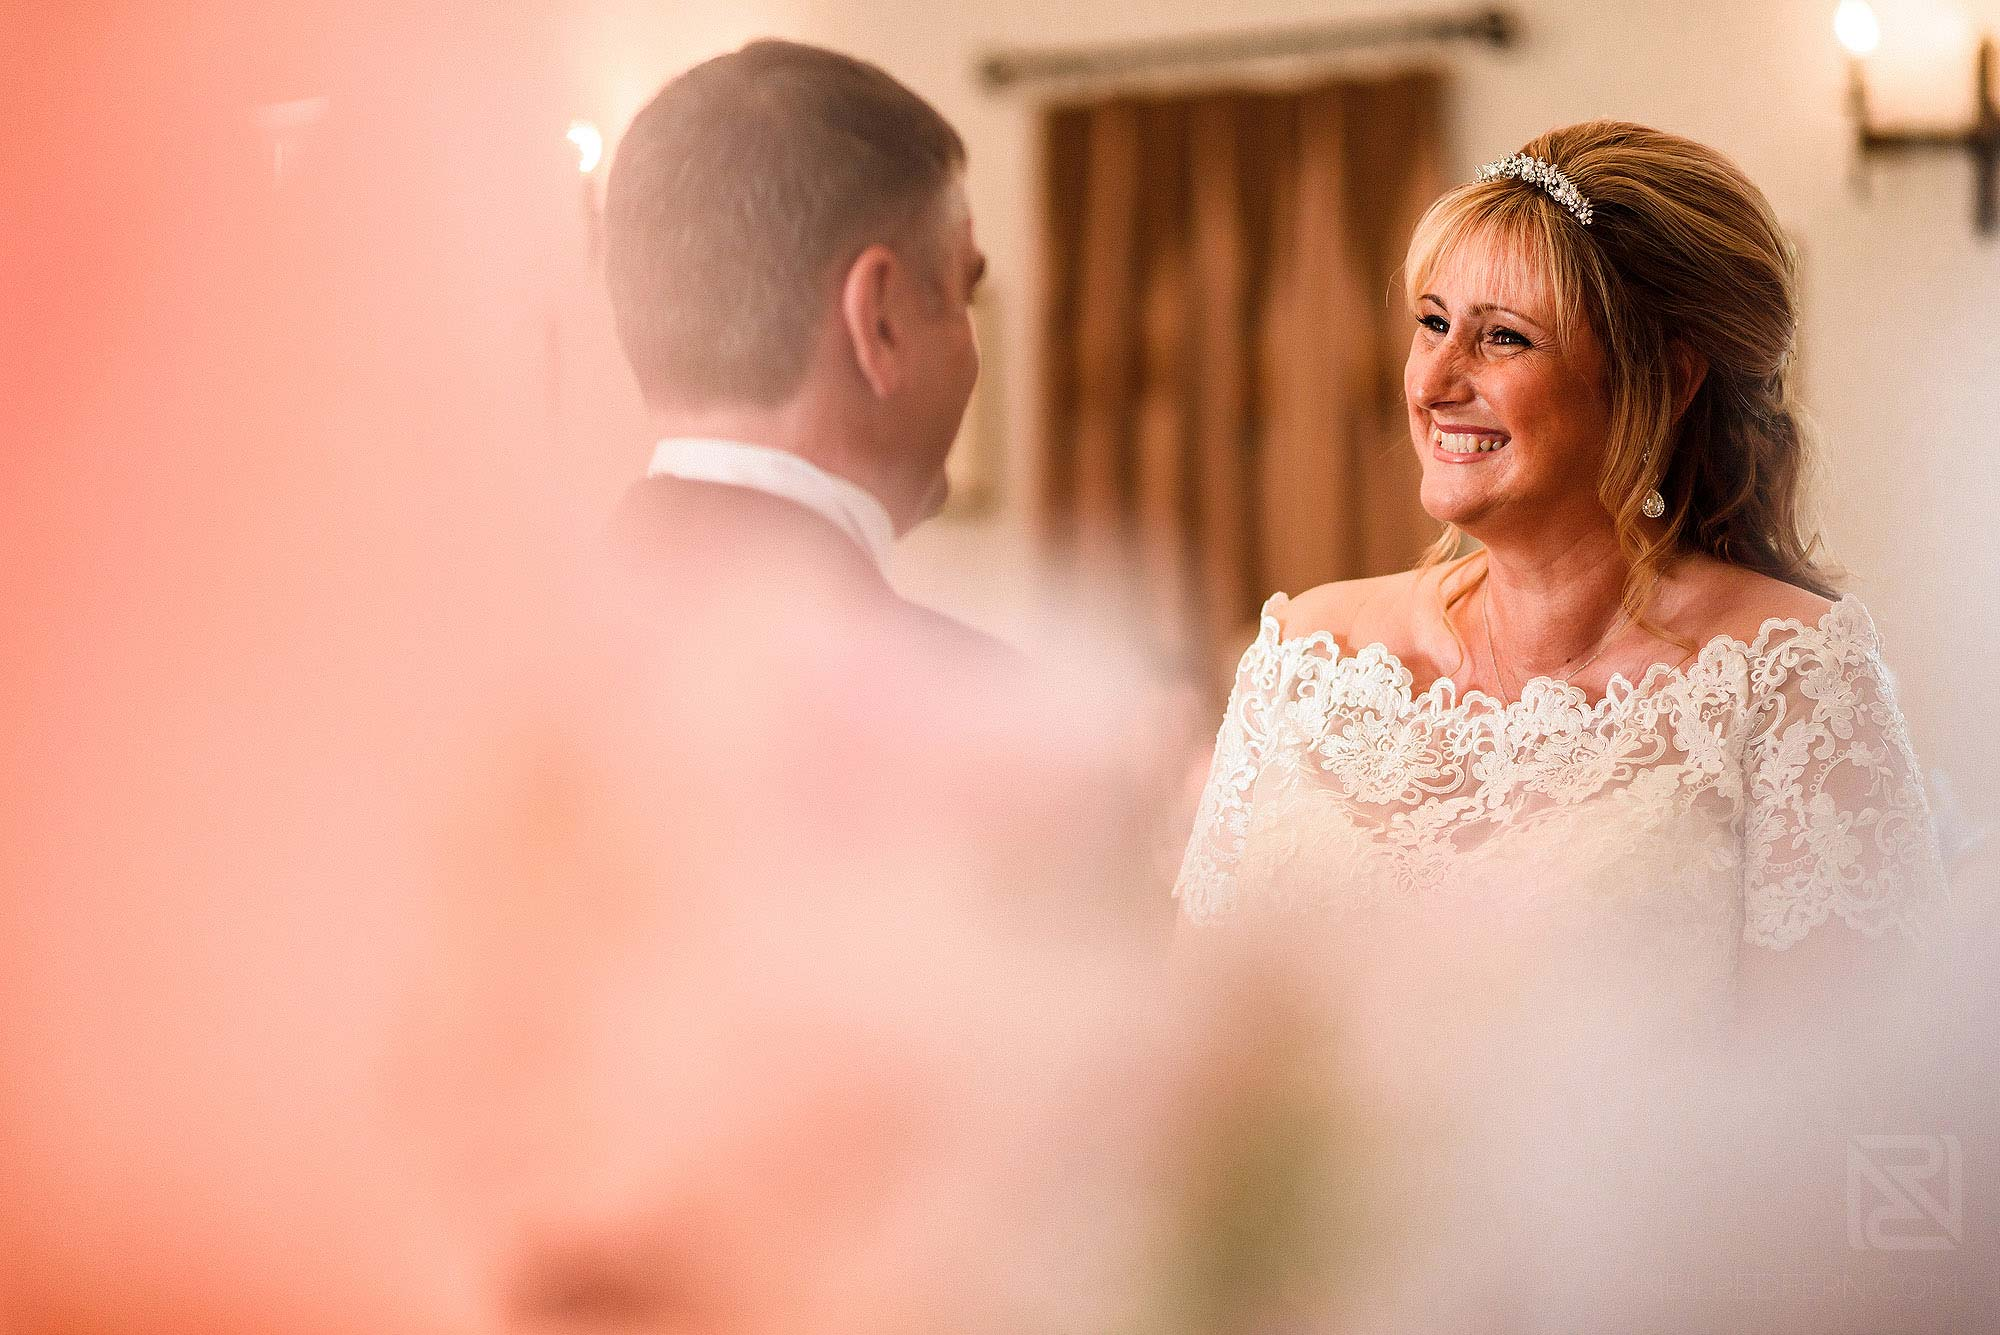 bride and groom looking at each other during wedding ceremony at The Villa Wrea Green